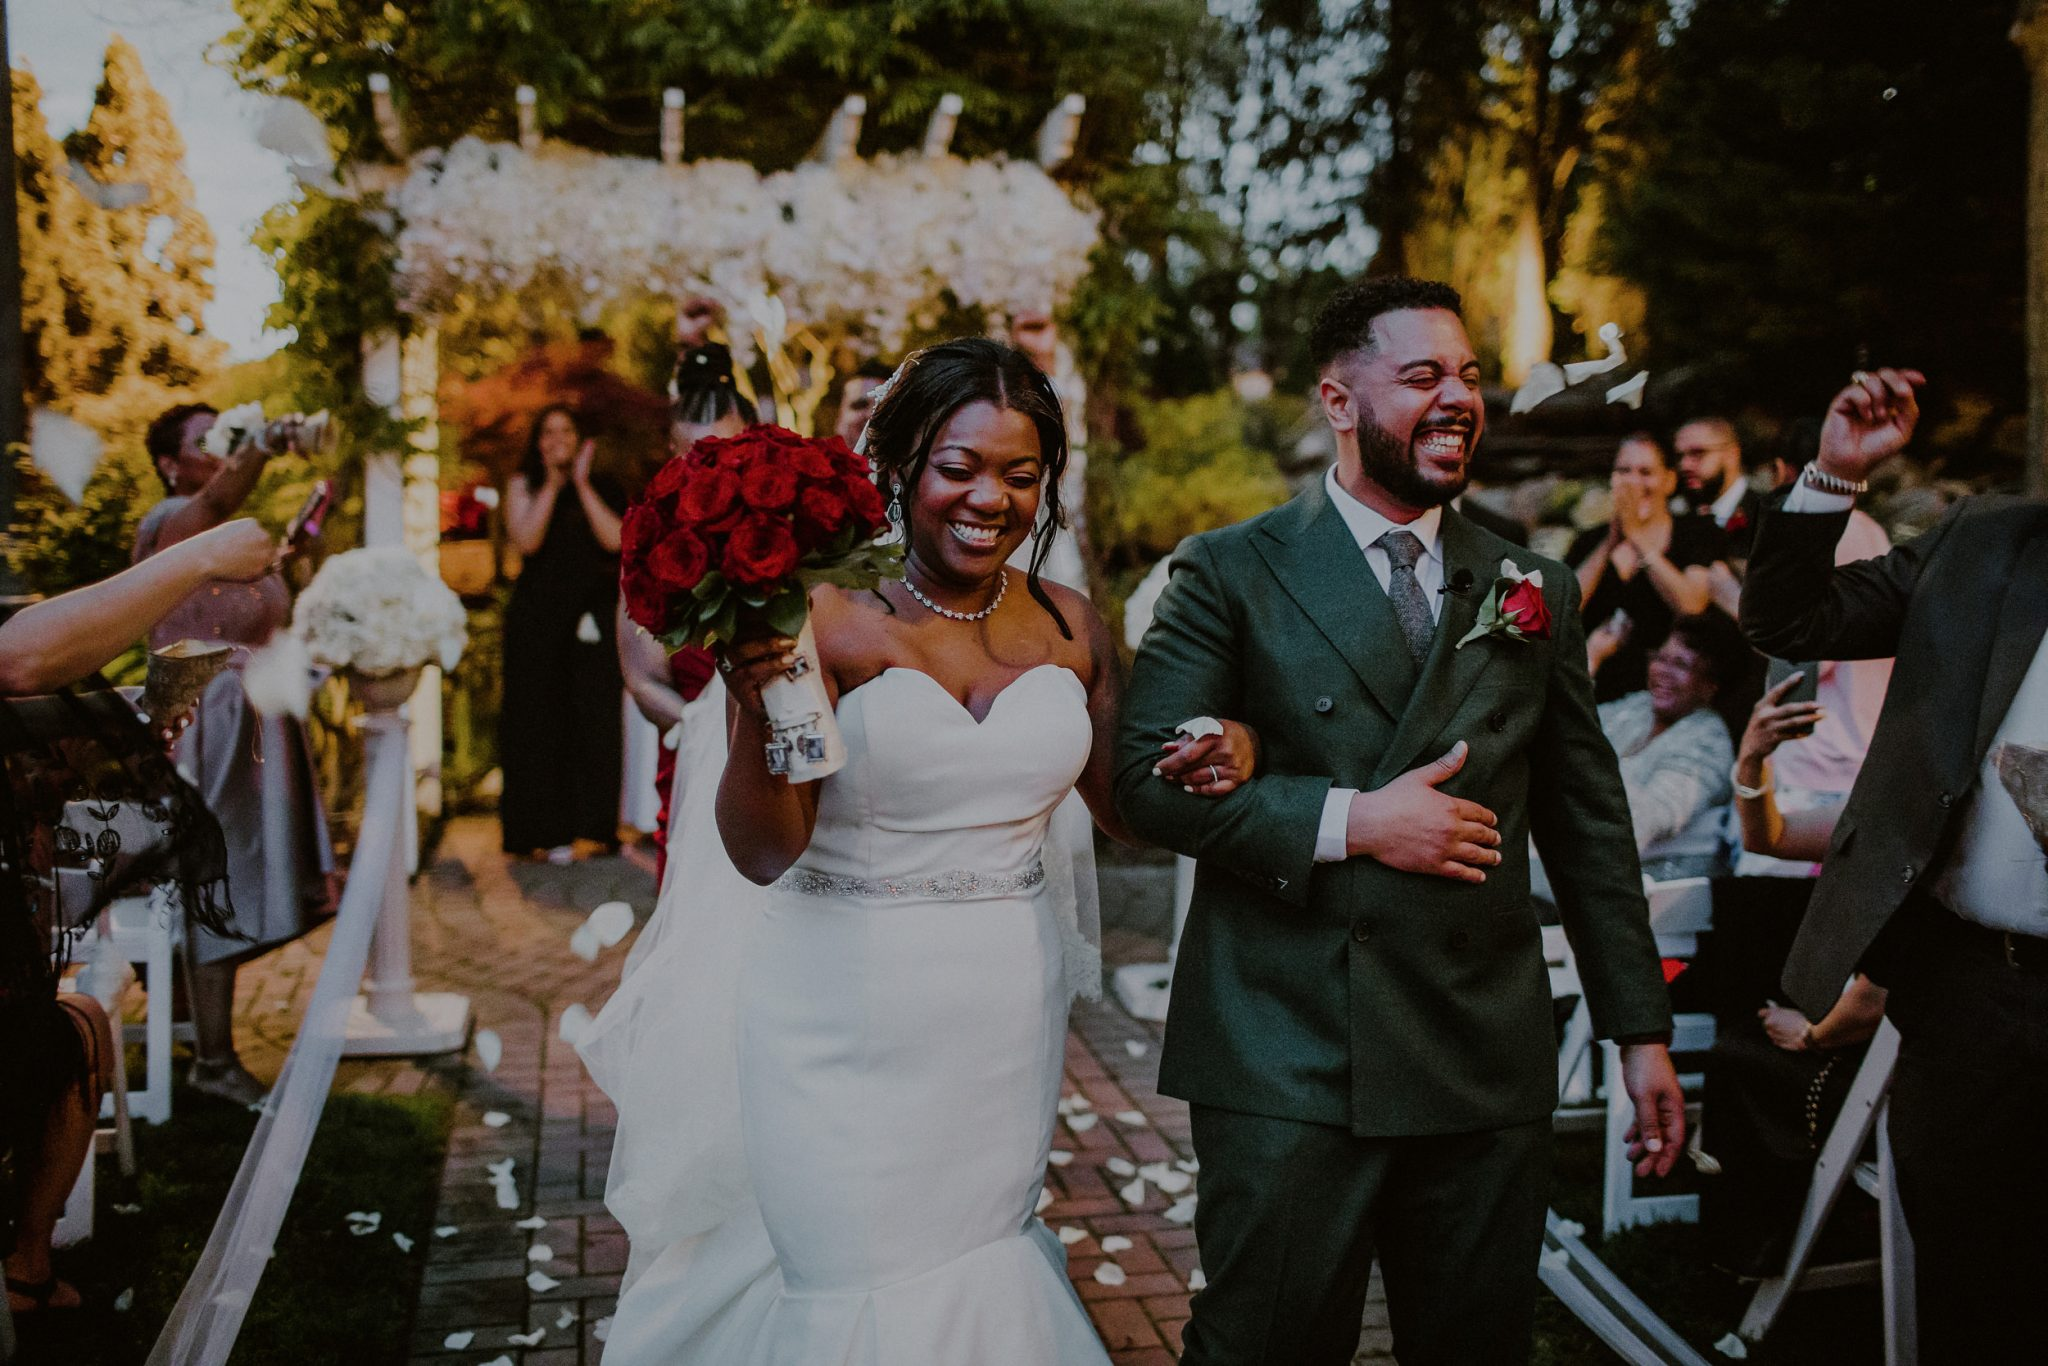 evening wedding ceremony outdoors at fox hollow